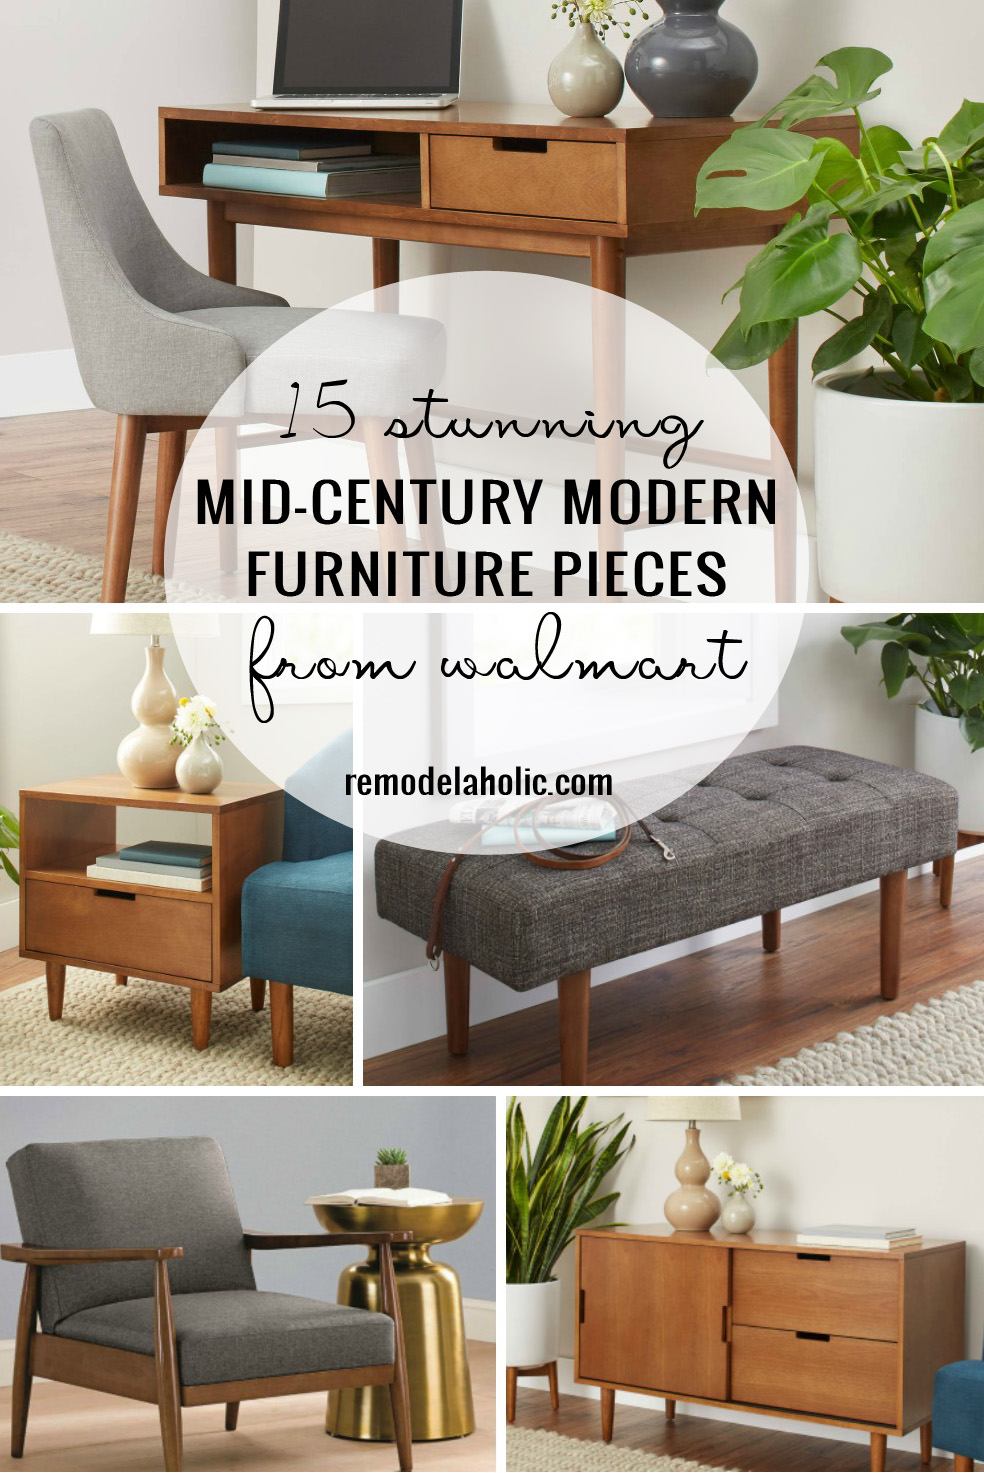 Walmart Living Room Wall Decor: 15 Stunning Mid-Century Modern Furniture